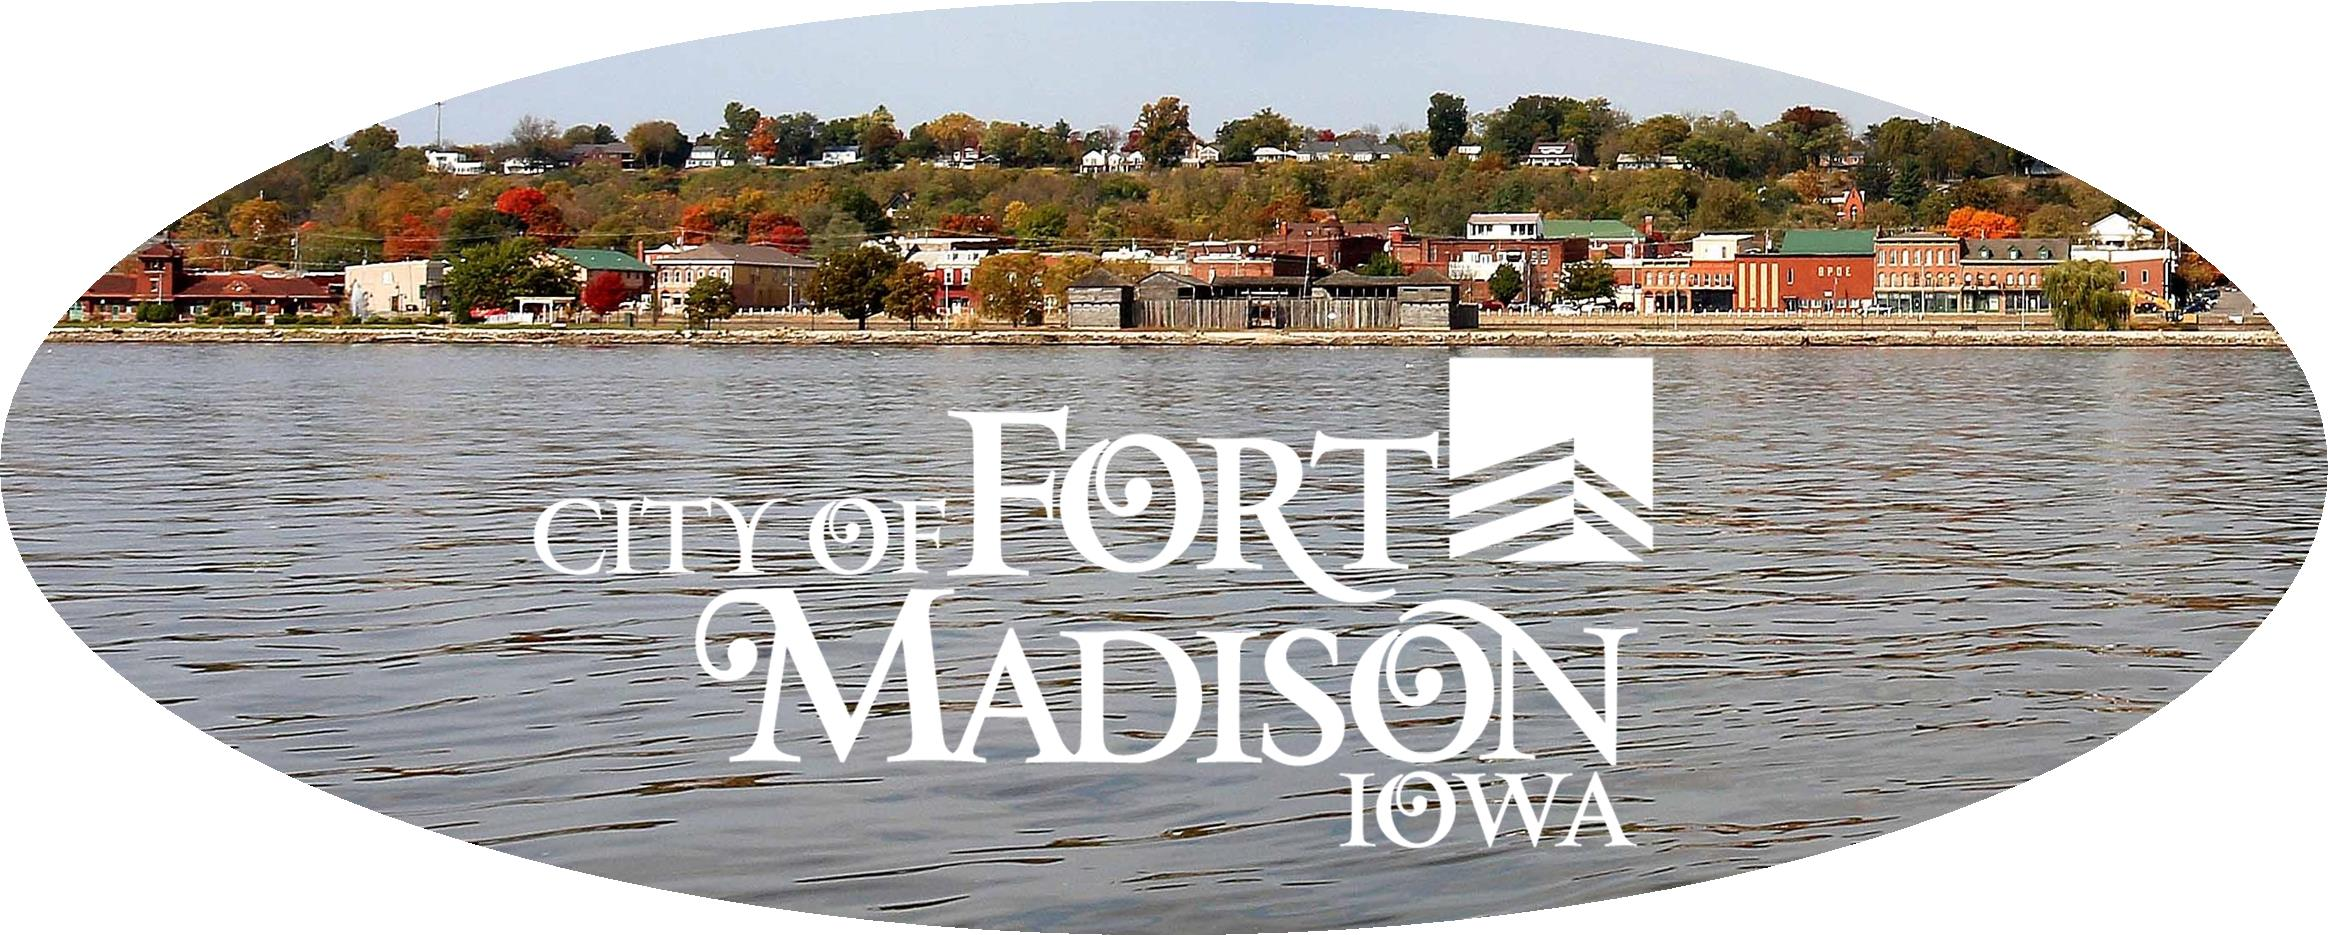 City of Fort Madison iowa - Lake